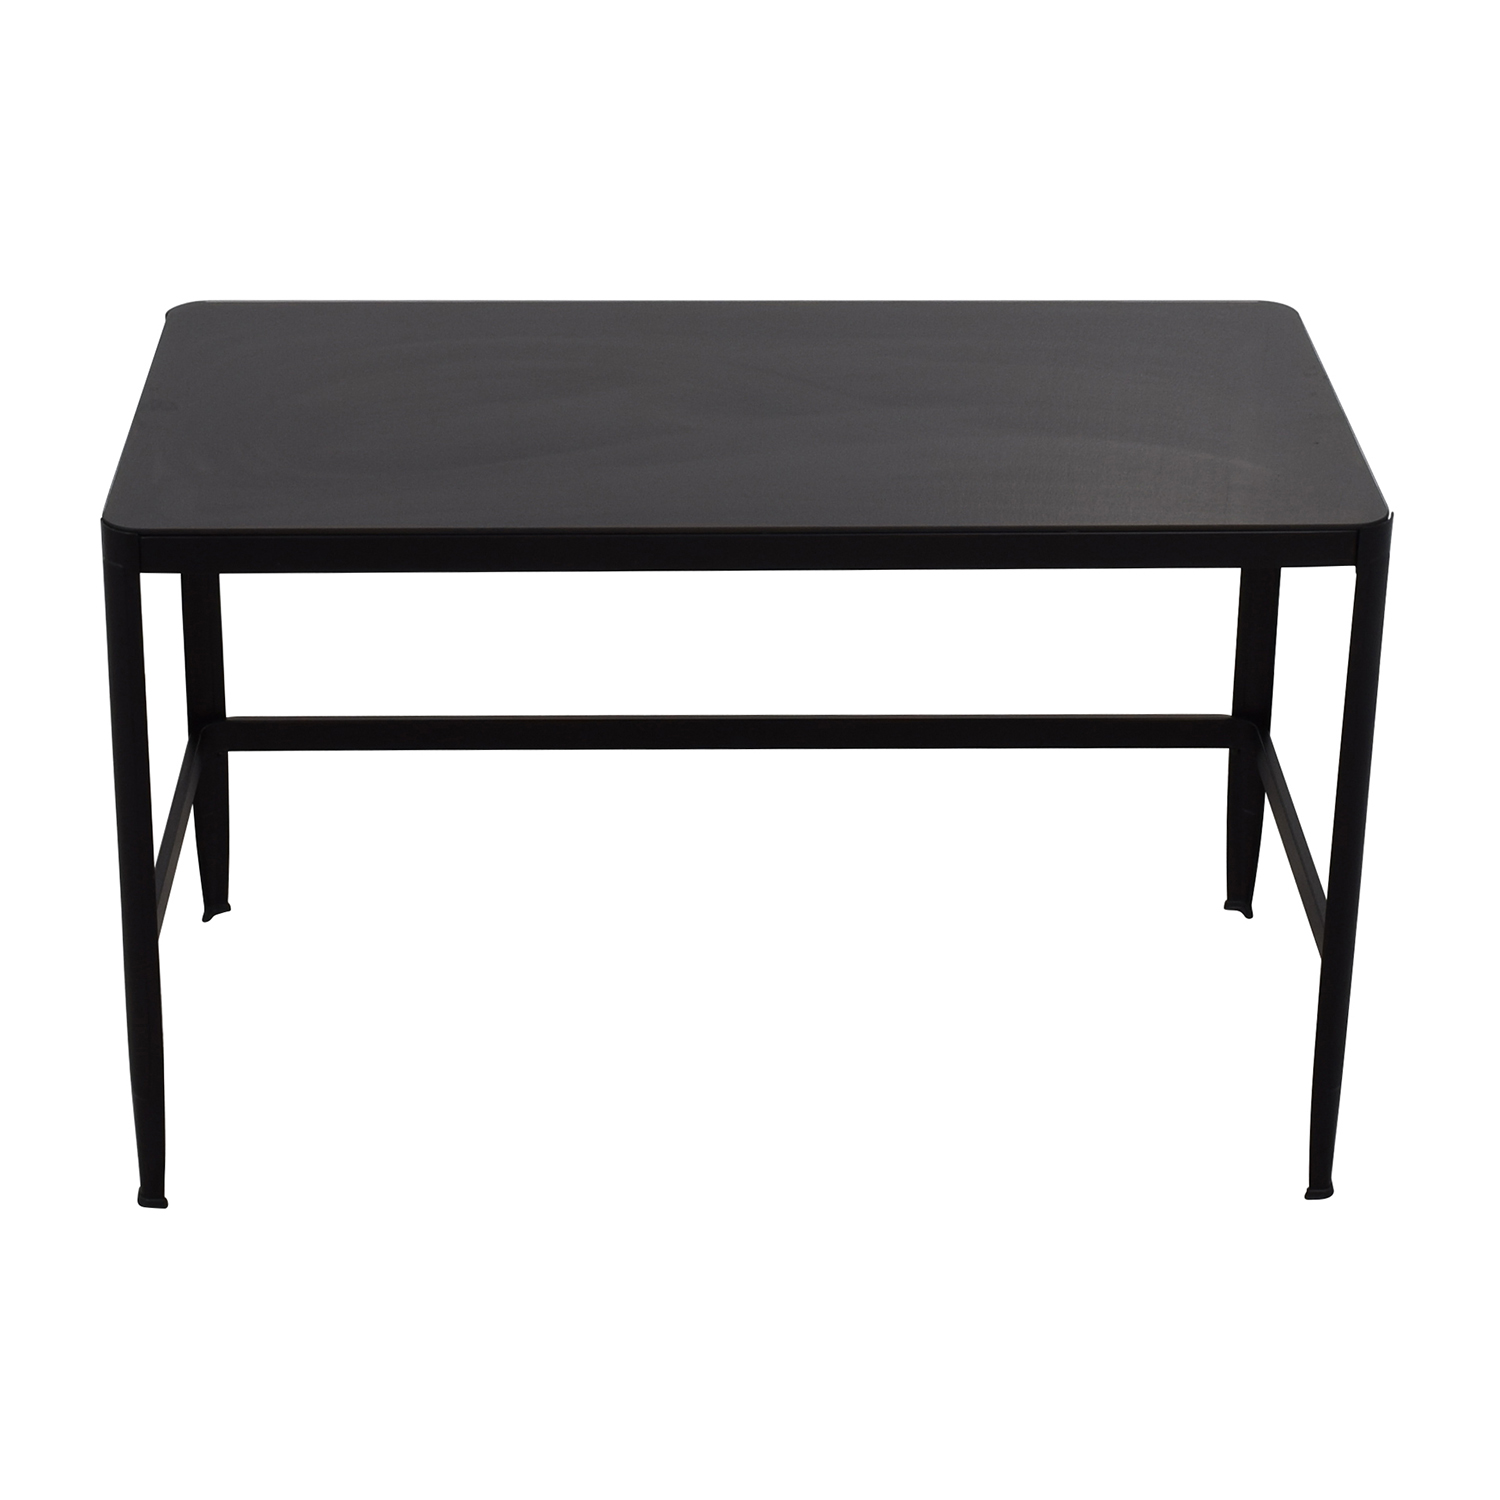 50 OFF  Crate and Barrel Crate and Barrel Leaning Desk